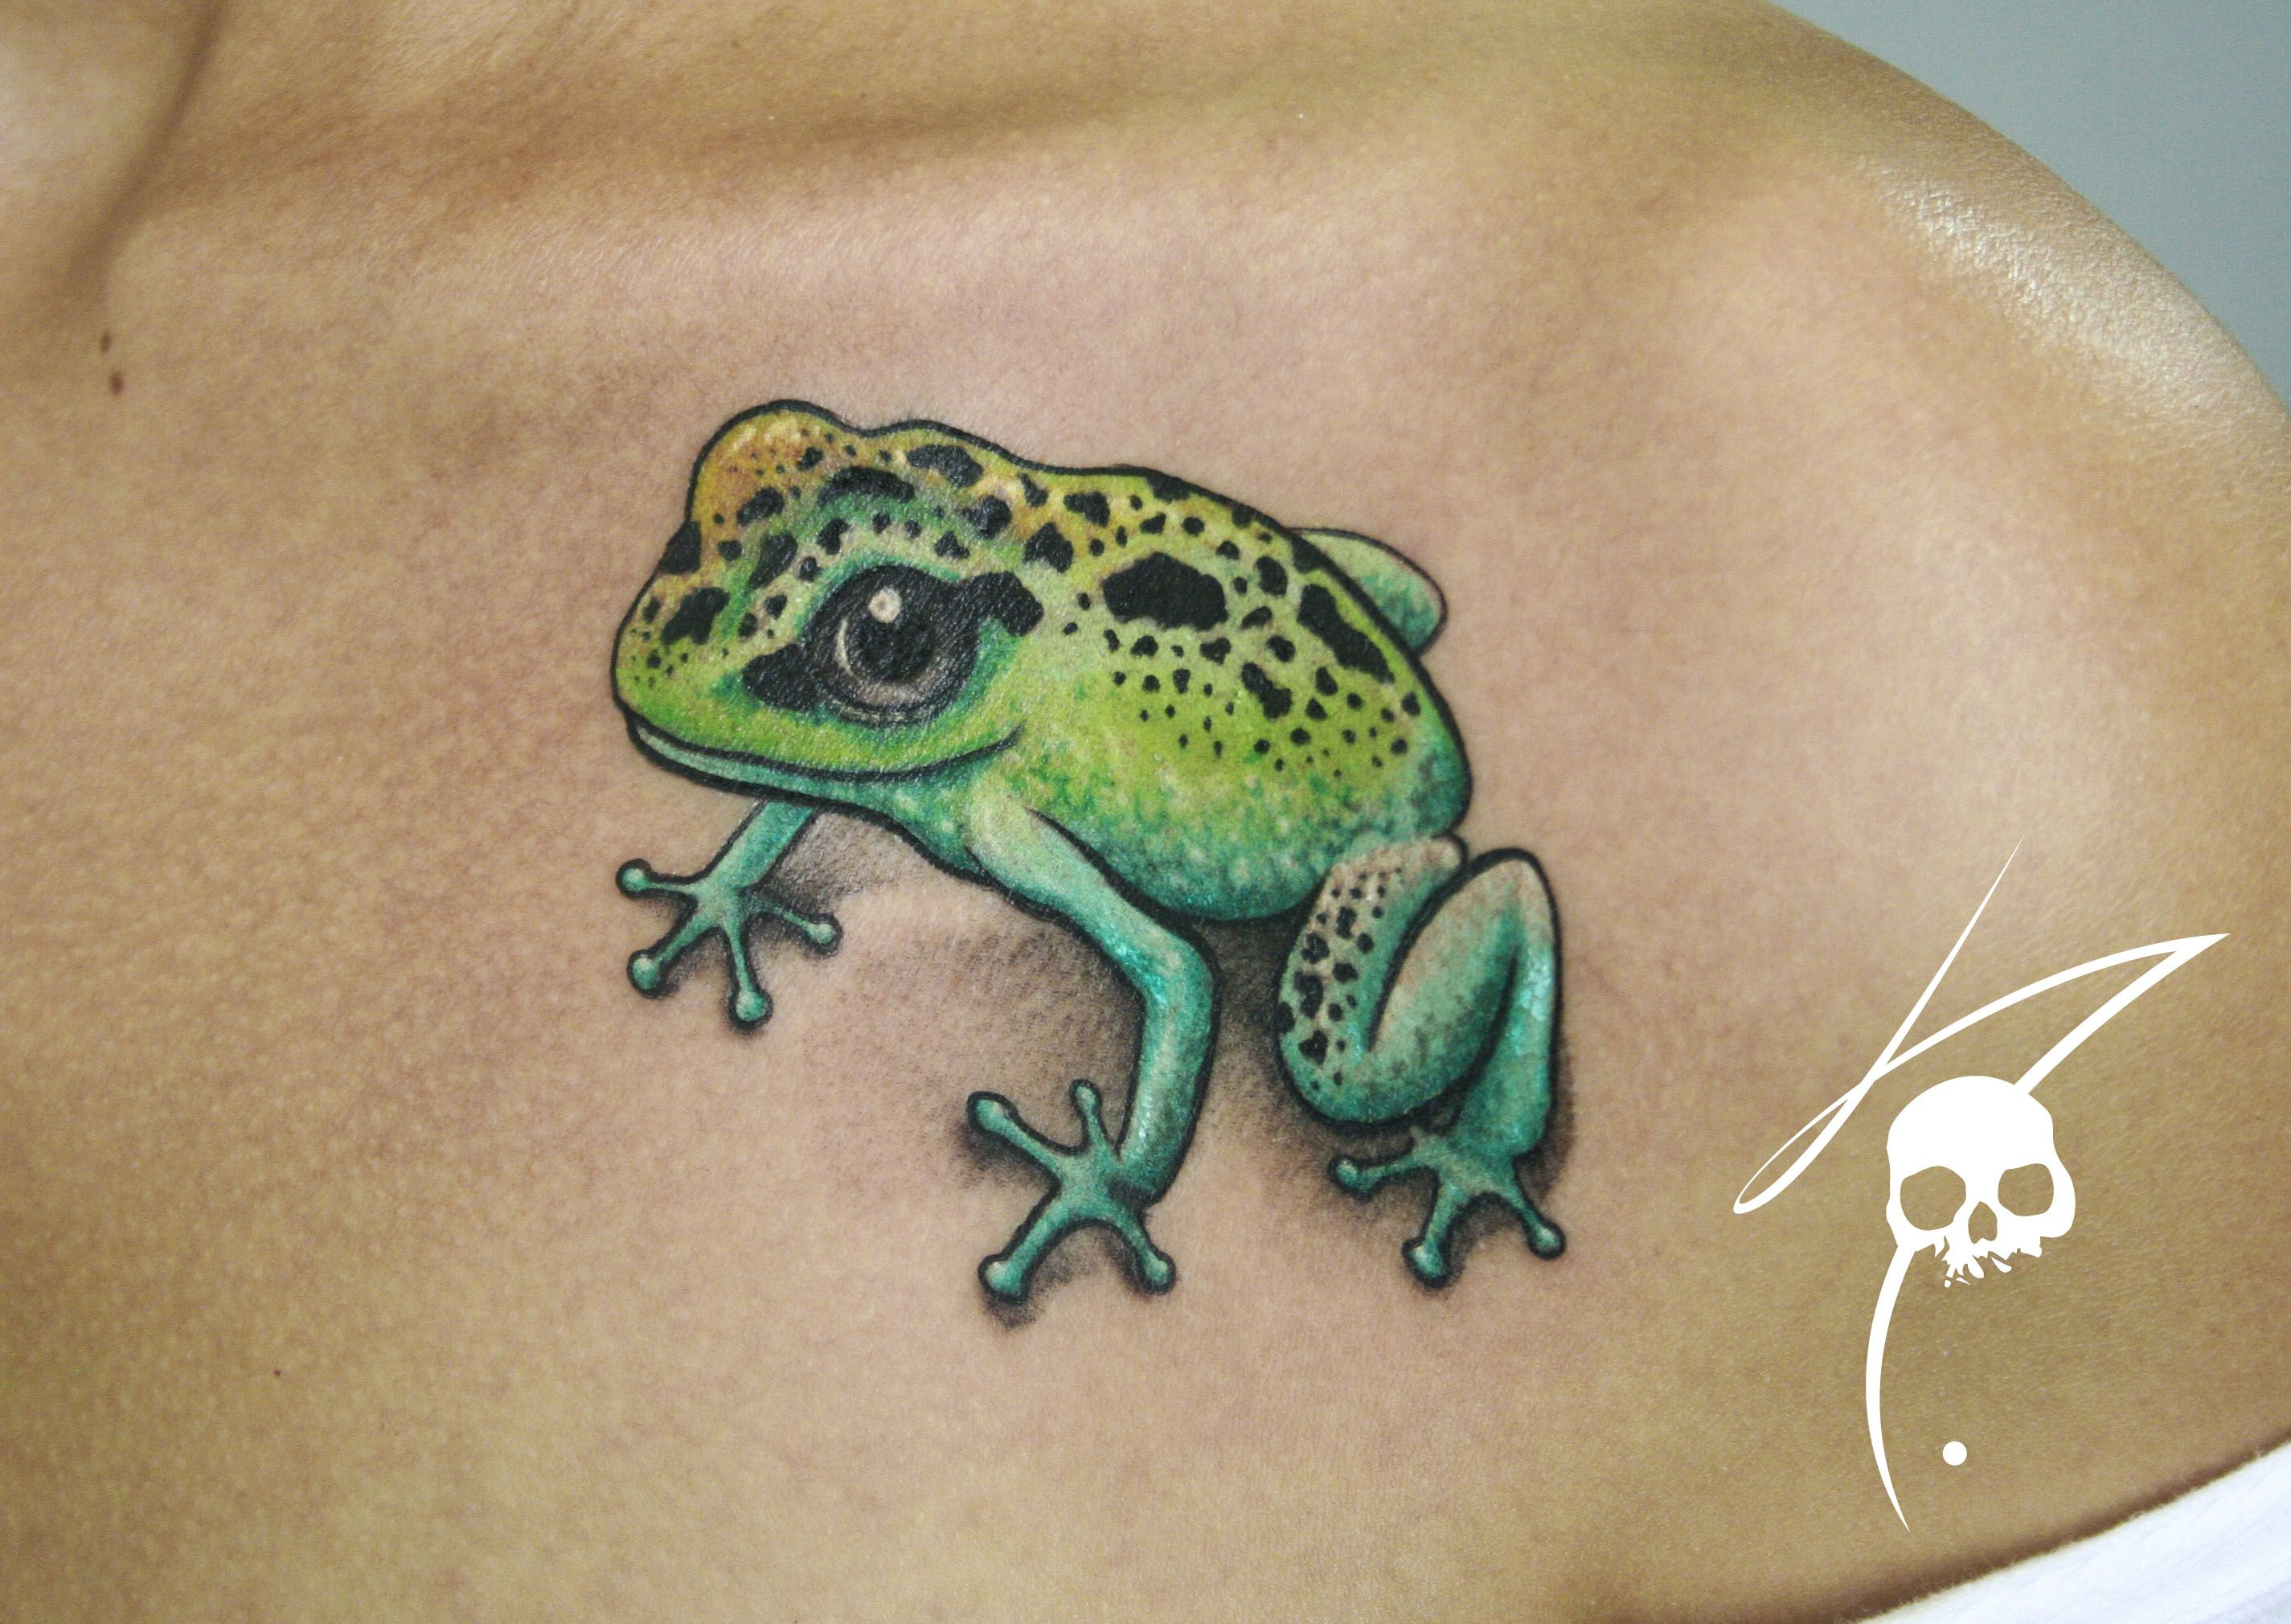 Frog Tattoo Ideas: Frog Color Tattoo